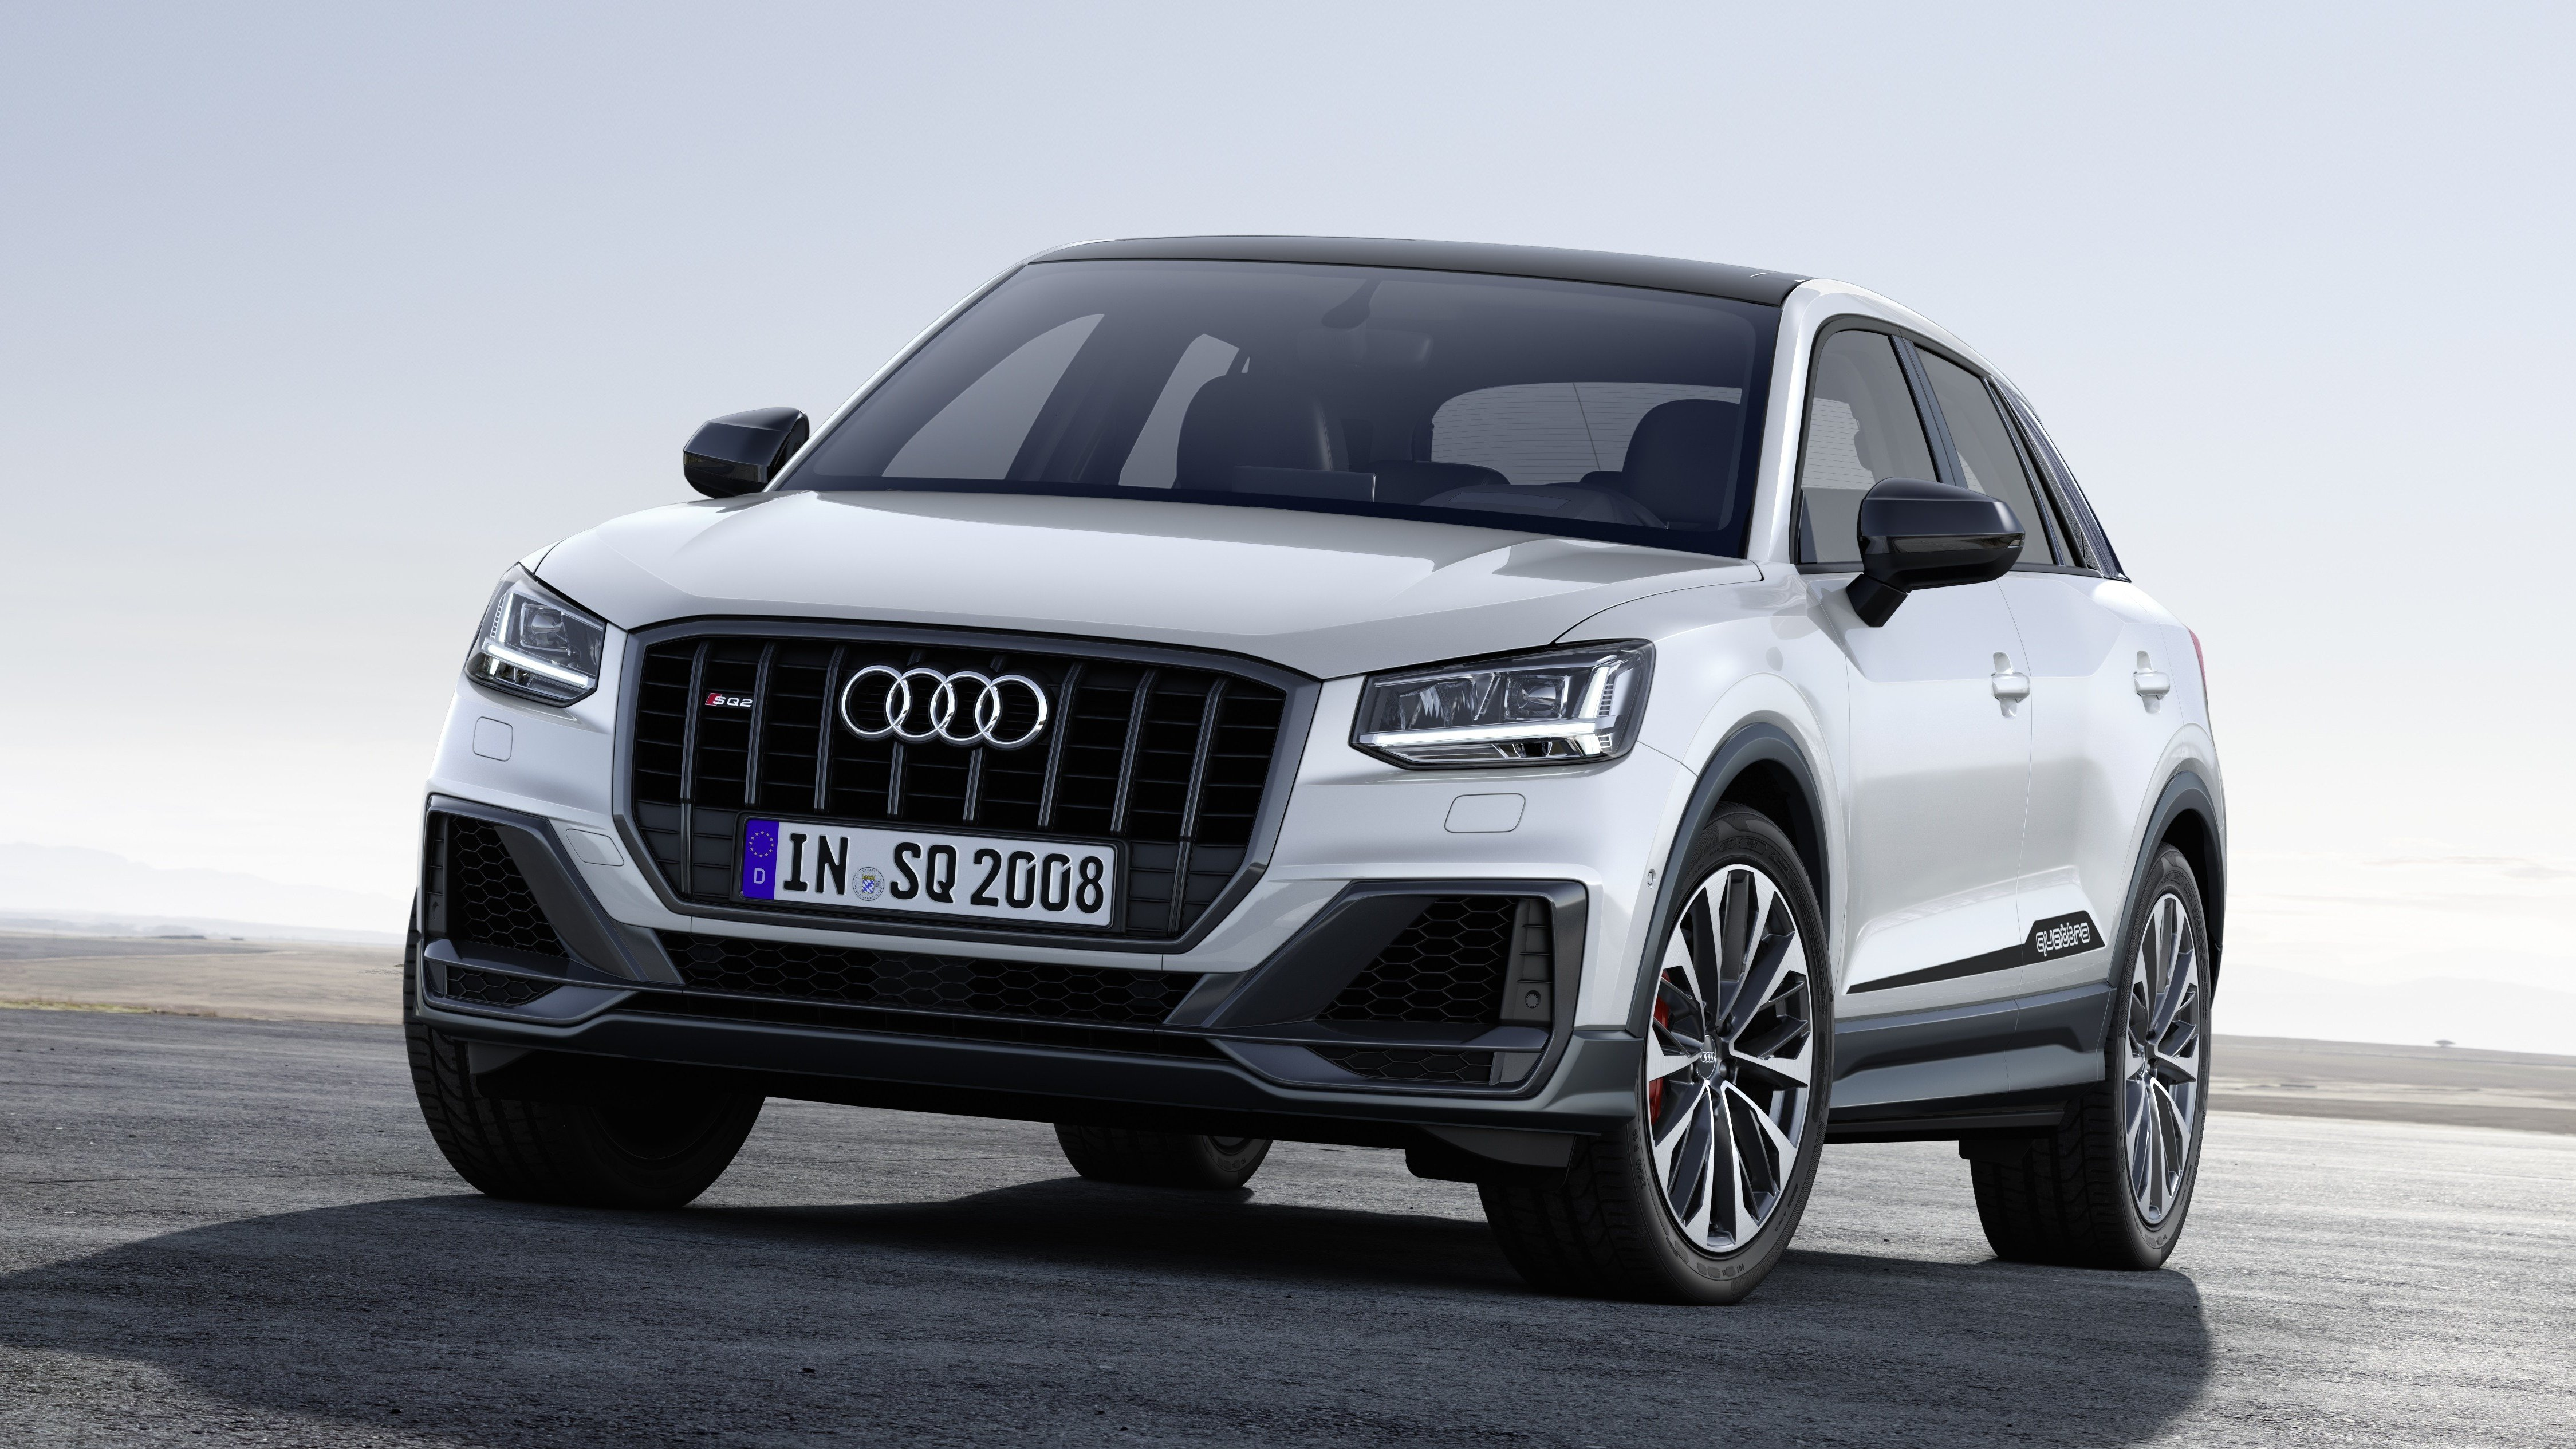 Latest The 2019 Audi Sq2 Delivers Nearly 300 Horsepower And A 4 8 Free Download